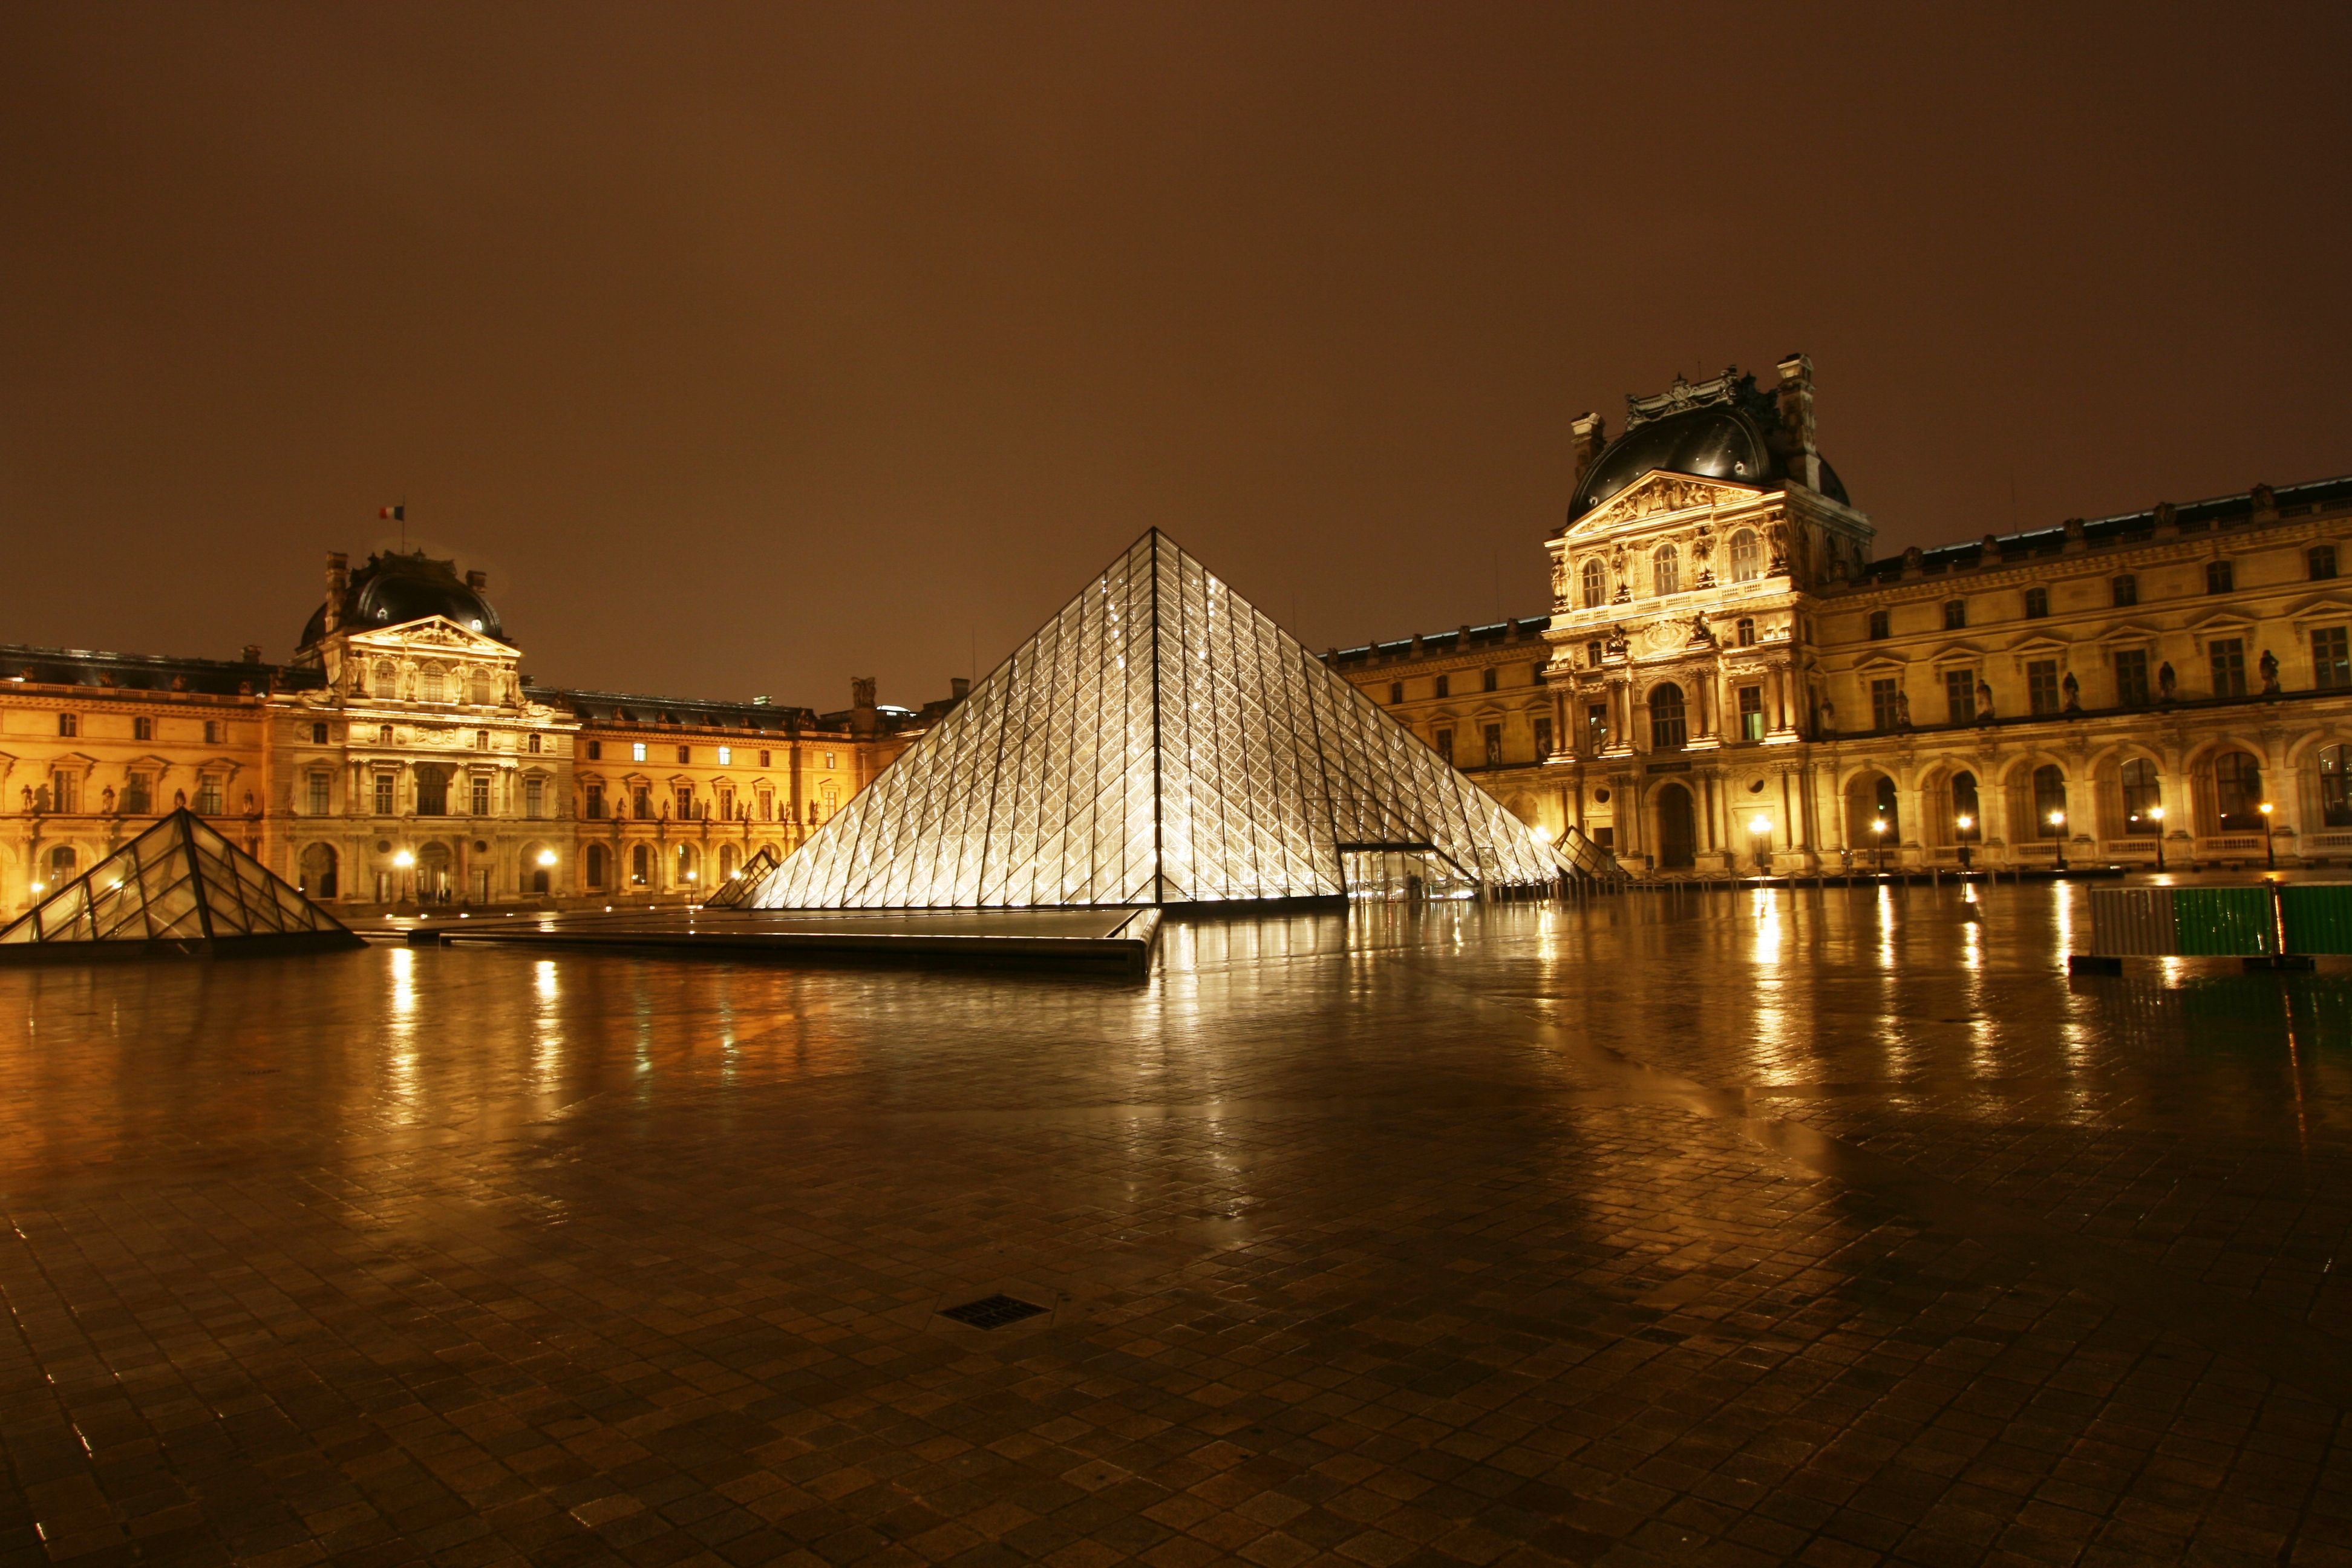 Louvre Museum - France. Visited Business. Shows